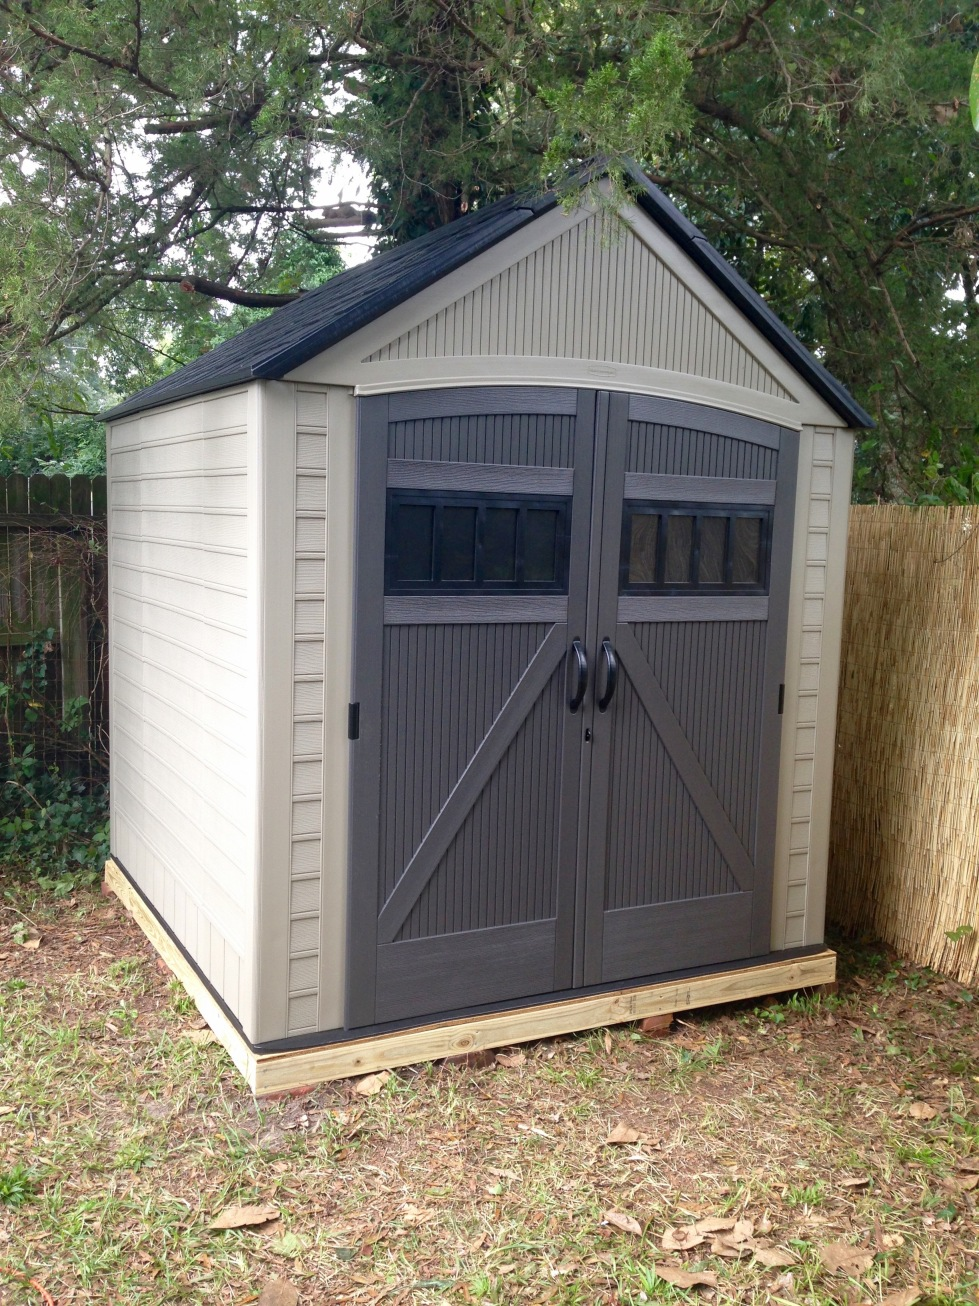 New garden shed completed.